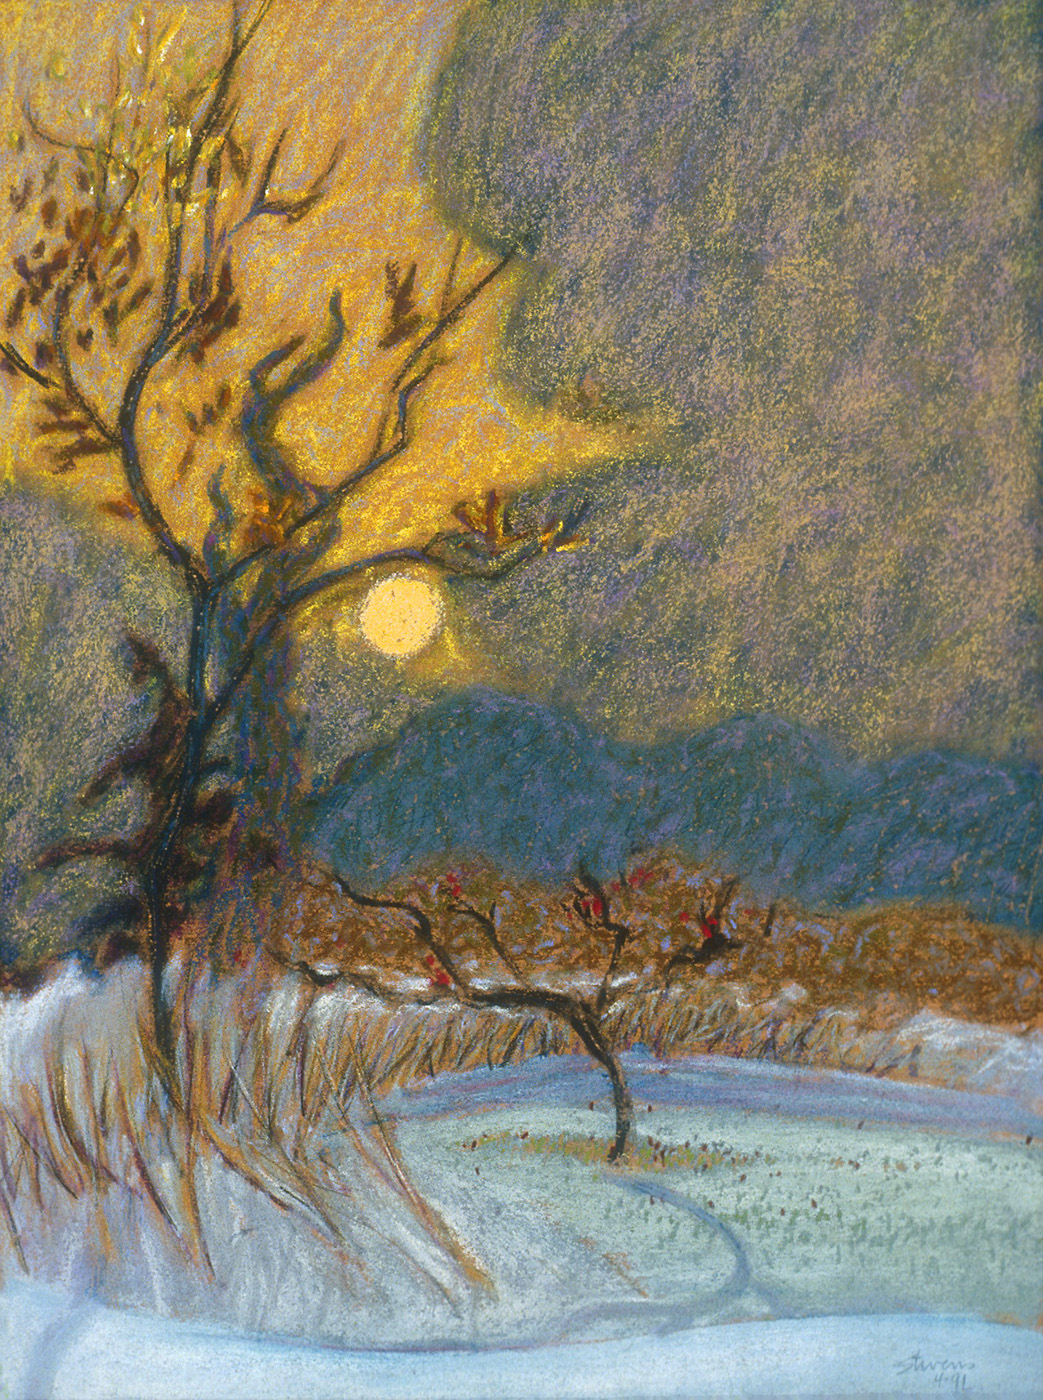 Low Sun, Early Winter   | pastel on paper | 15 x 11"